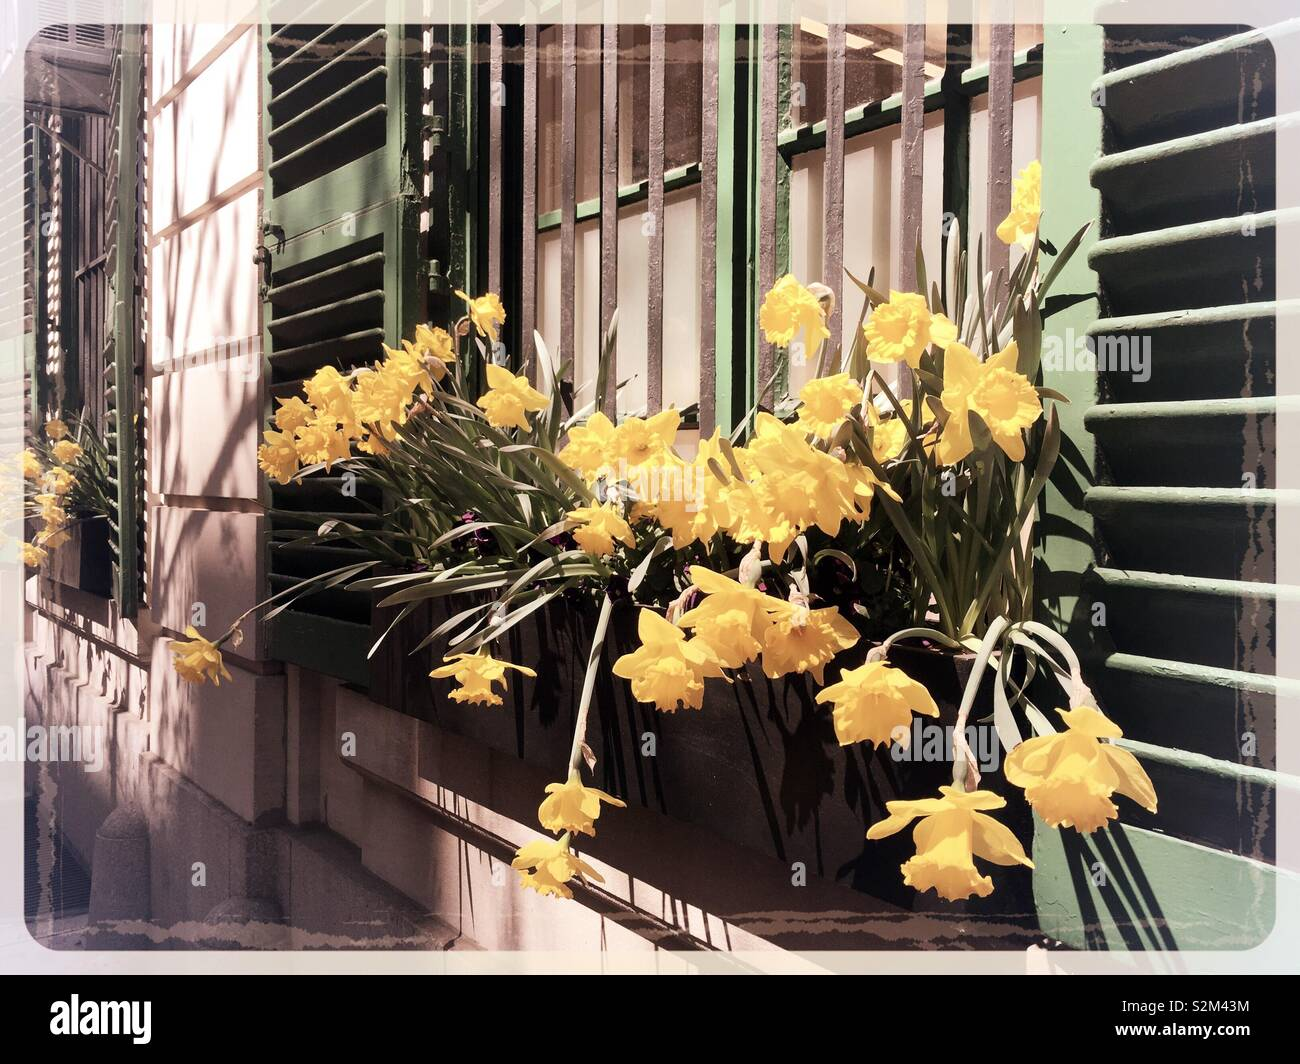 Window box on an apartment building filled with blooming daffodils, - Stock Image